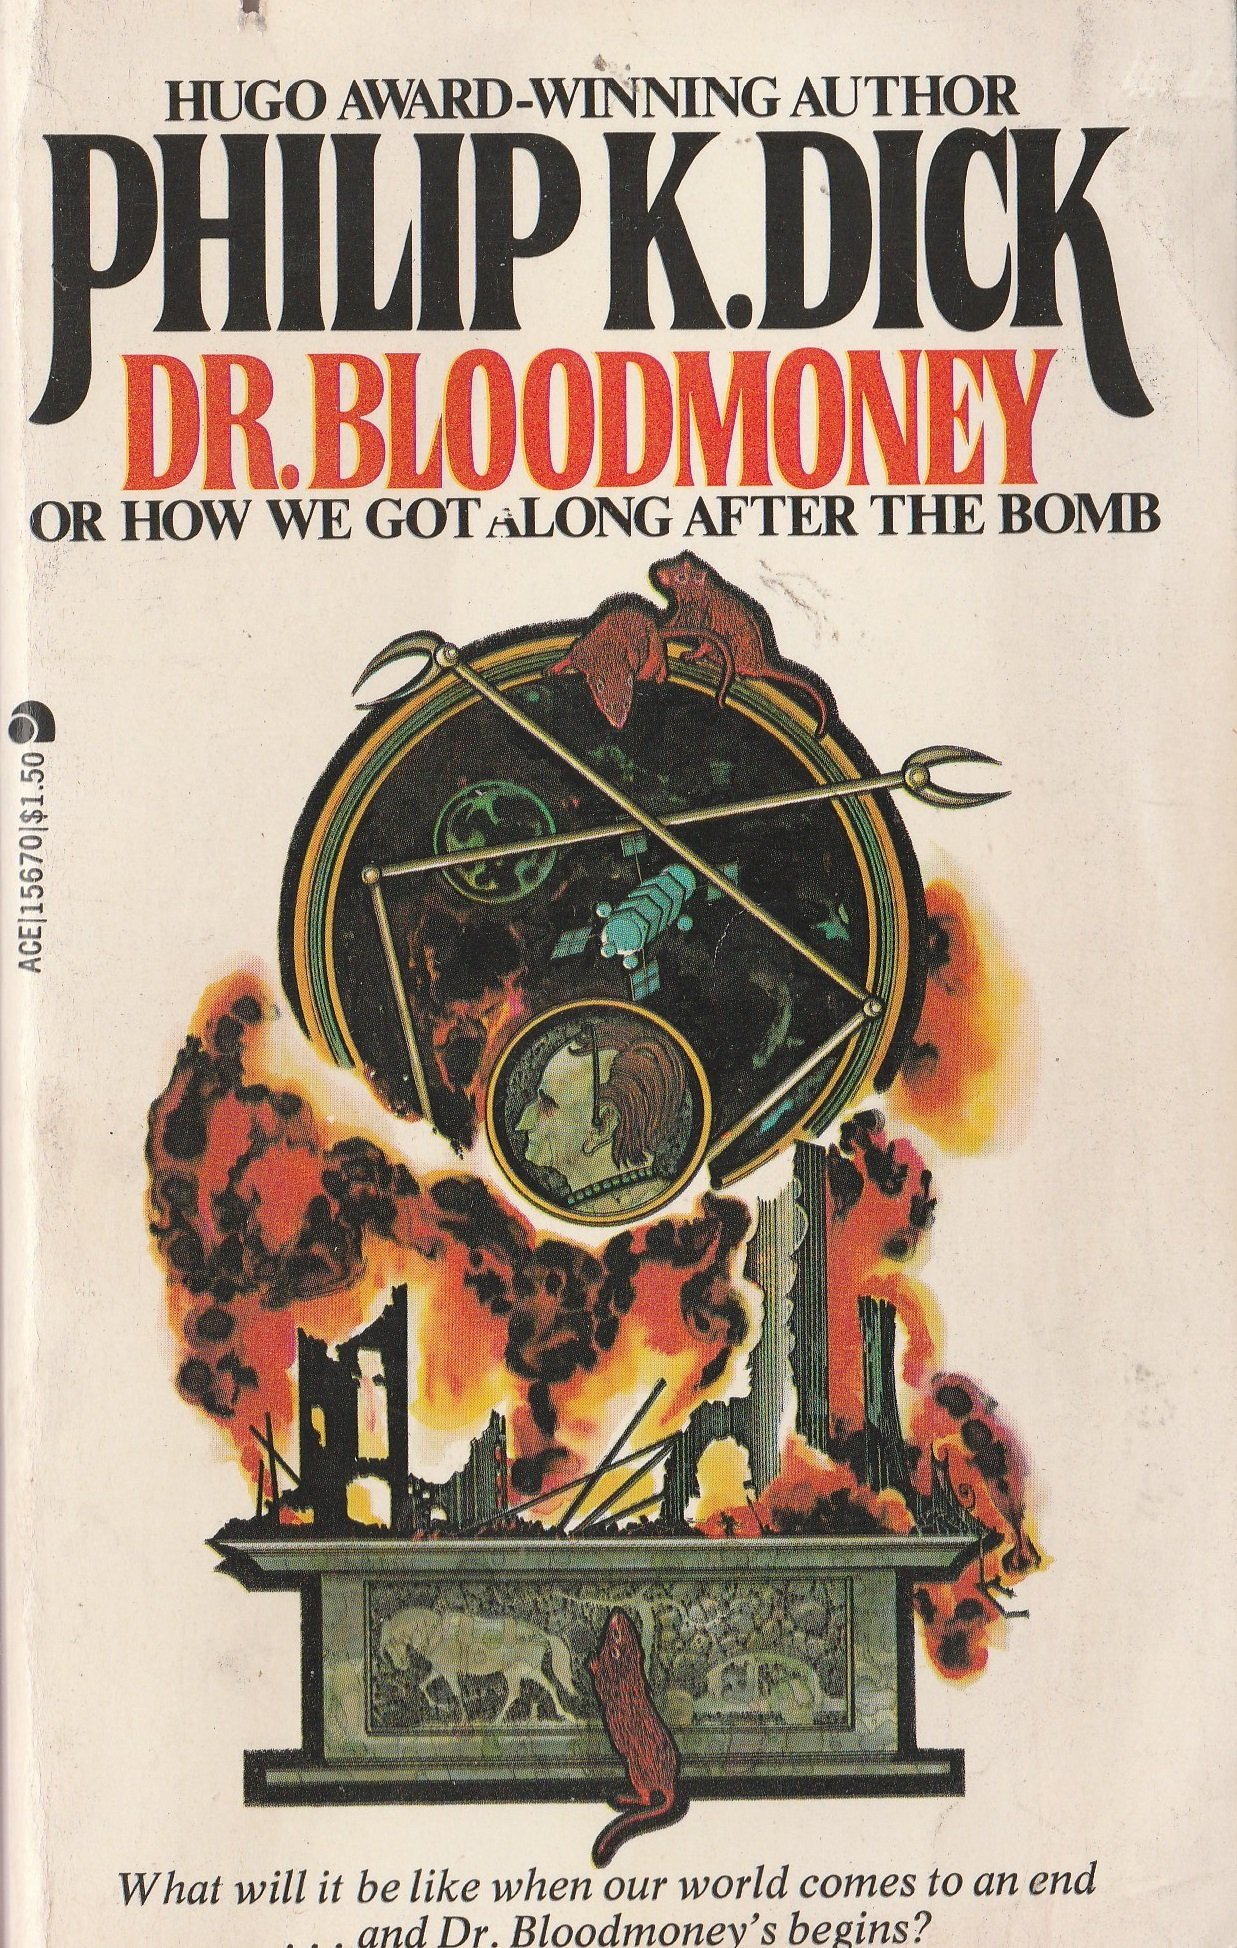 Dr. Bloodmoney, or How We Got Along After the Bomb, Philip K. Dick